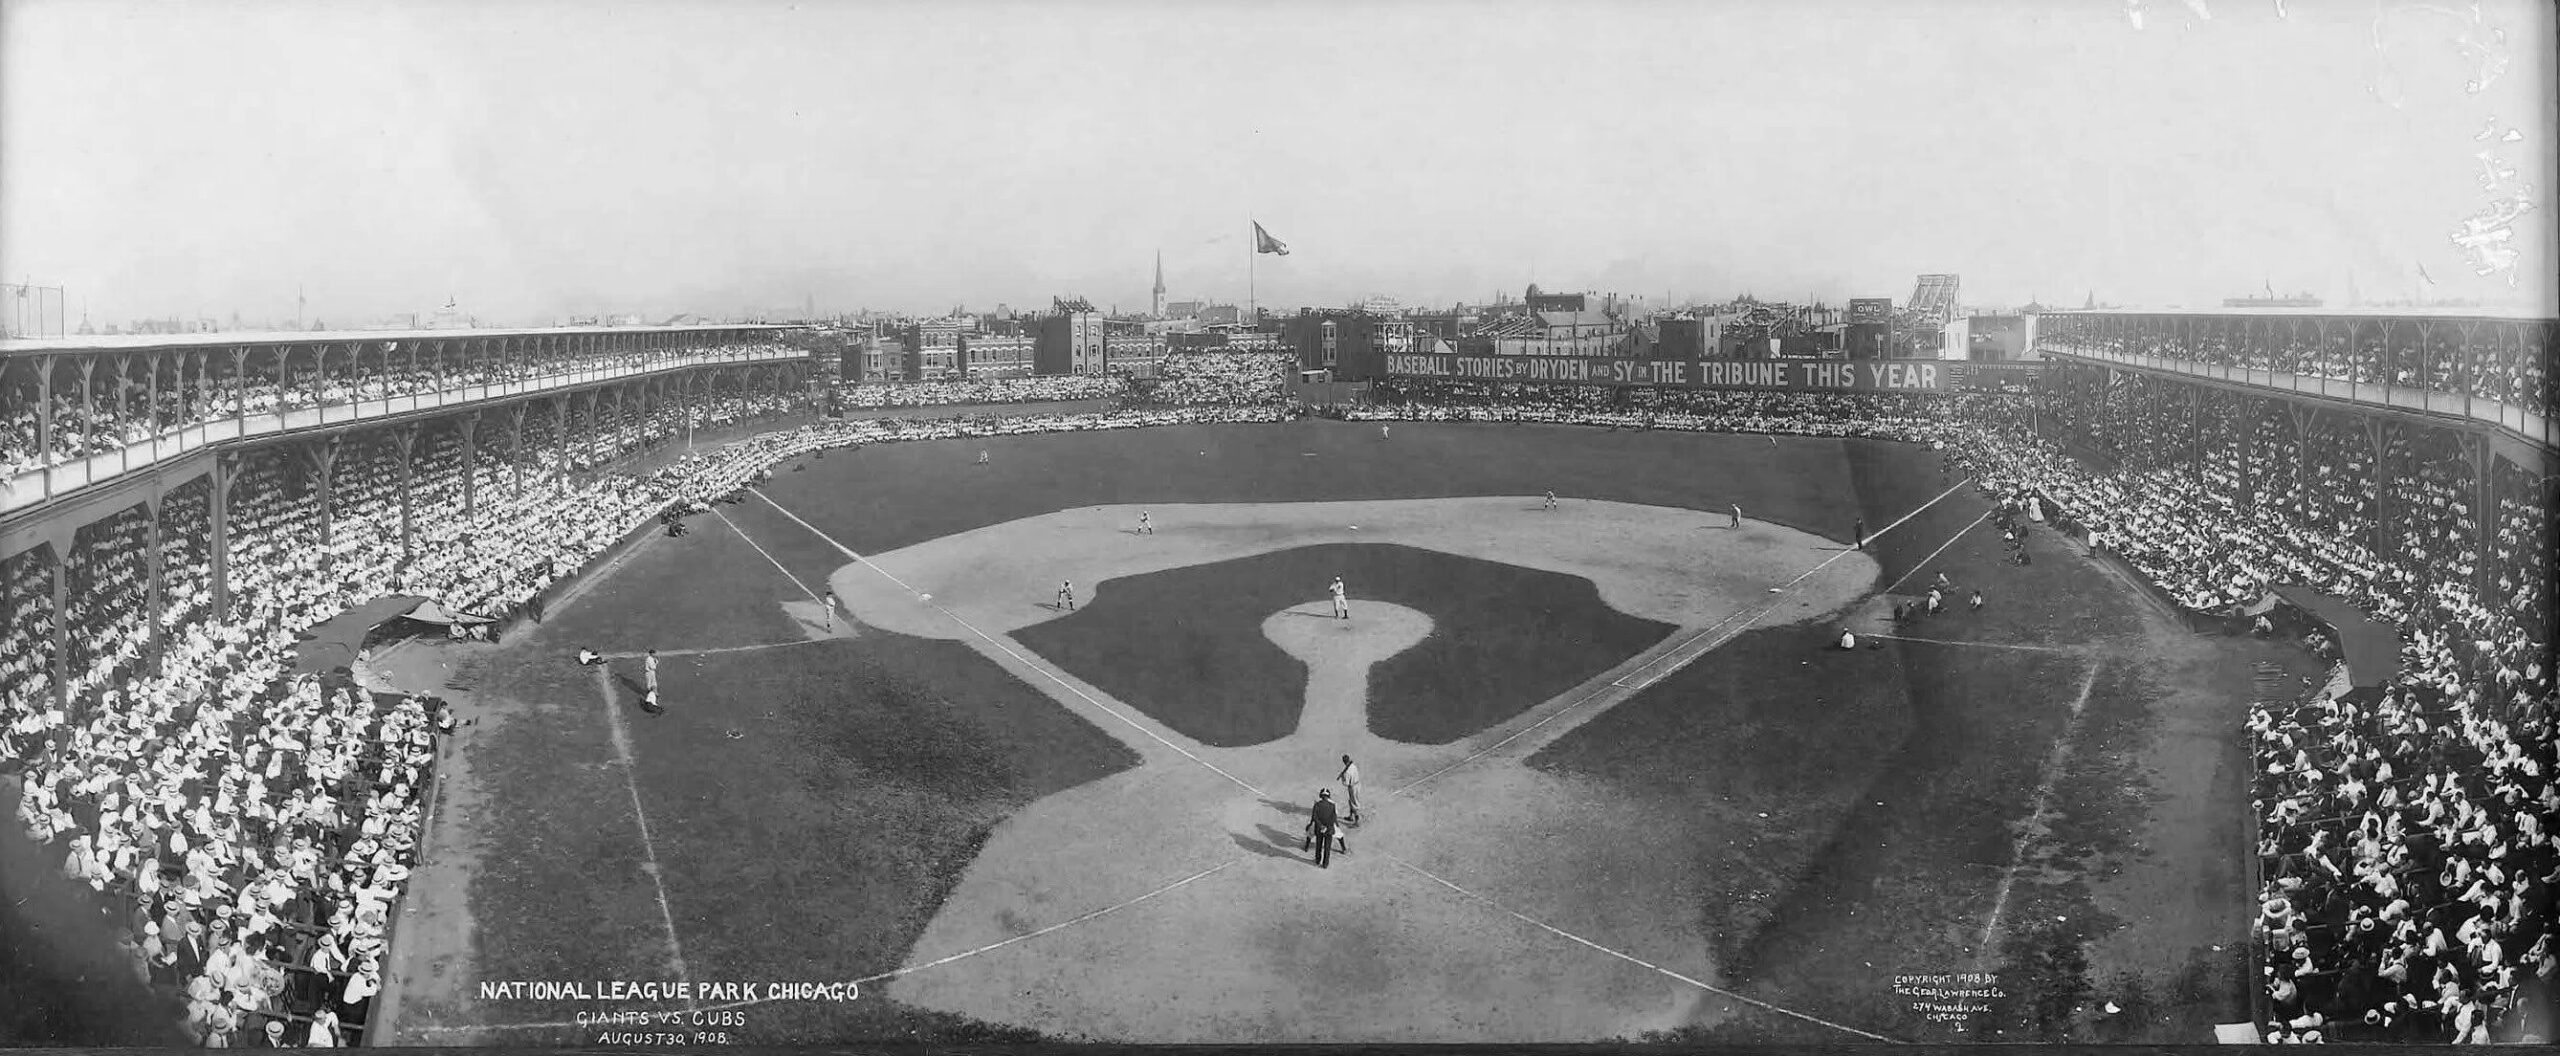 West Side Park, former home of the Chicago Cubs